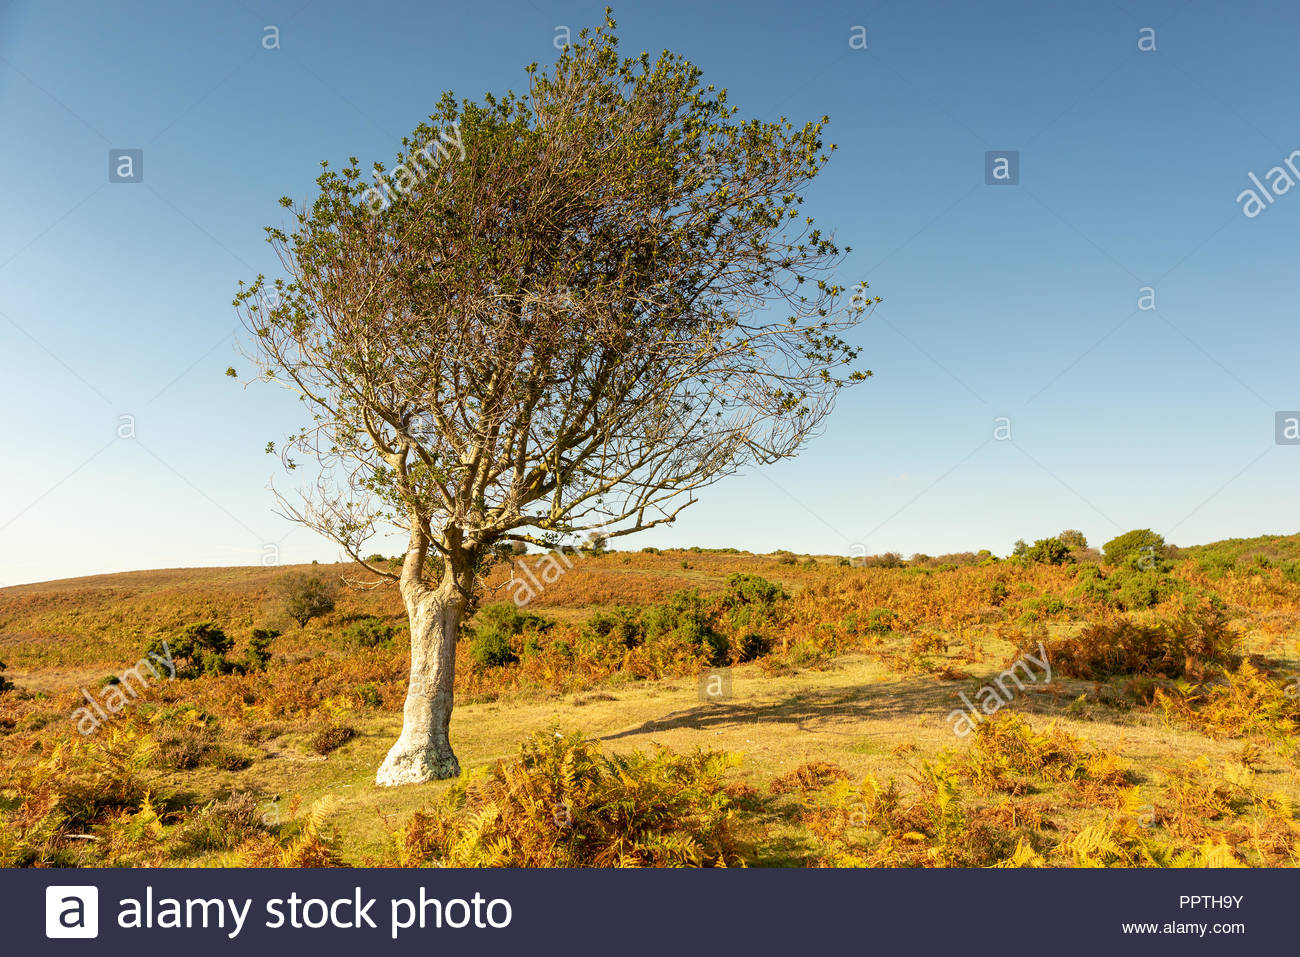 New Forest, Hampshire, UK, 27th September 2018. Unseasonably warm weather in the south of England with a clear blue sky and temperatures reaching 22 degrees. A tree, shaped by the wind, appears to bask in the warm sunshine. Credit: Paul Biggins/Alamy Live News Stock Photo